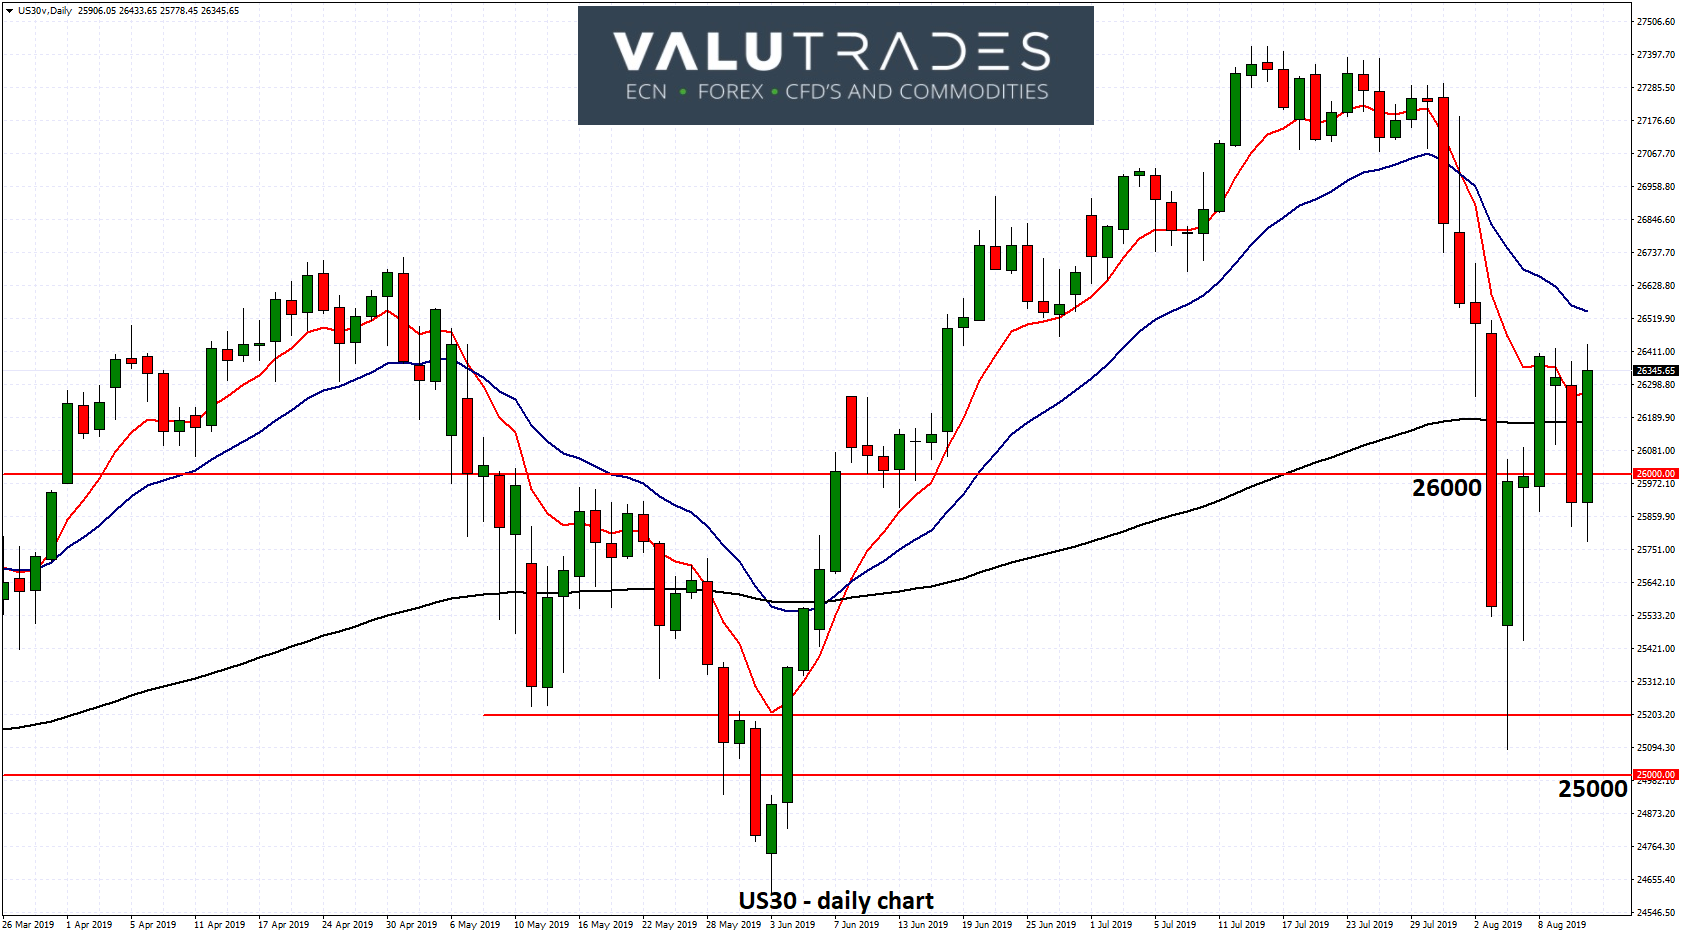 US30 - Rallies Back Above Key 26000 Level Again as Markets Expect More Cuts